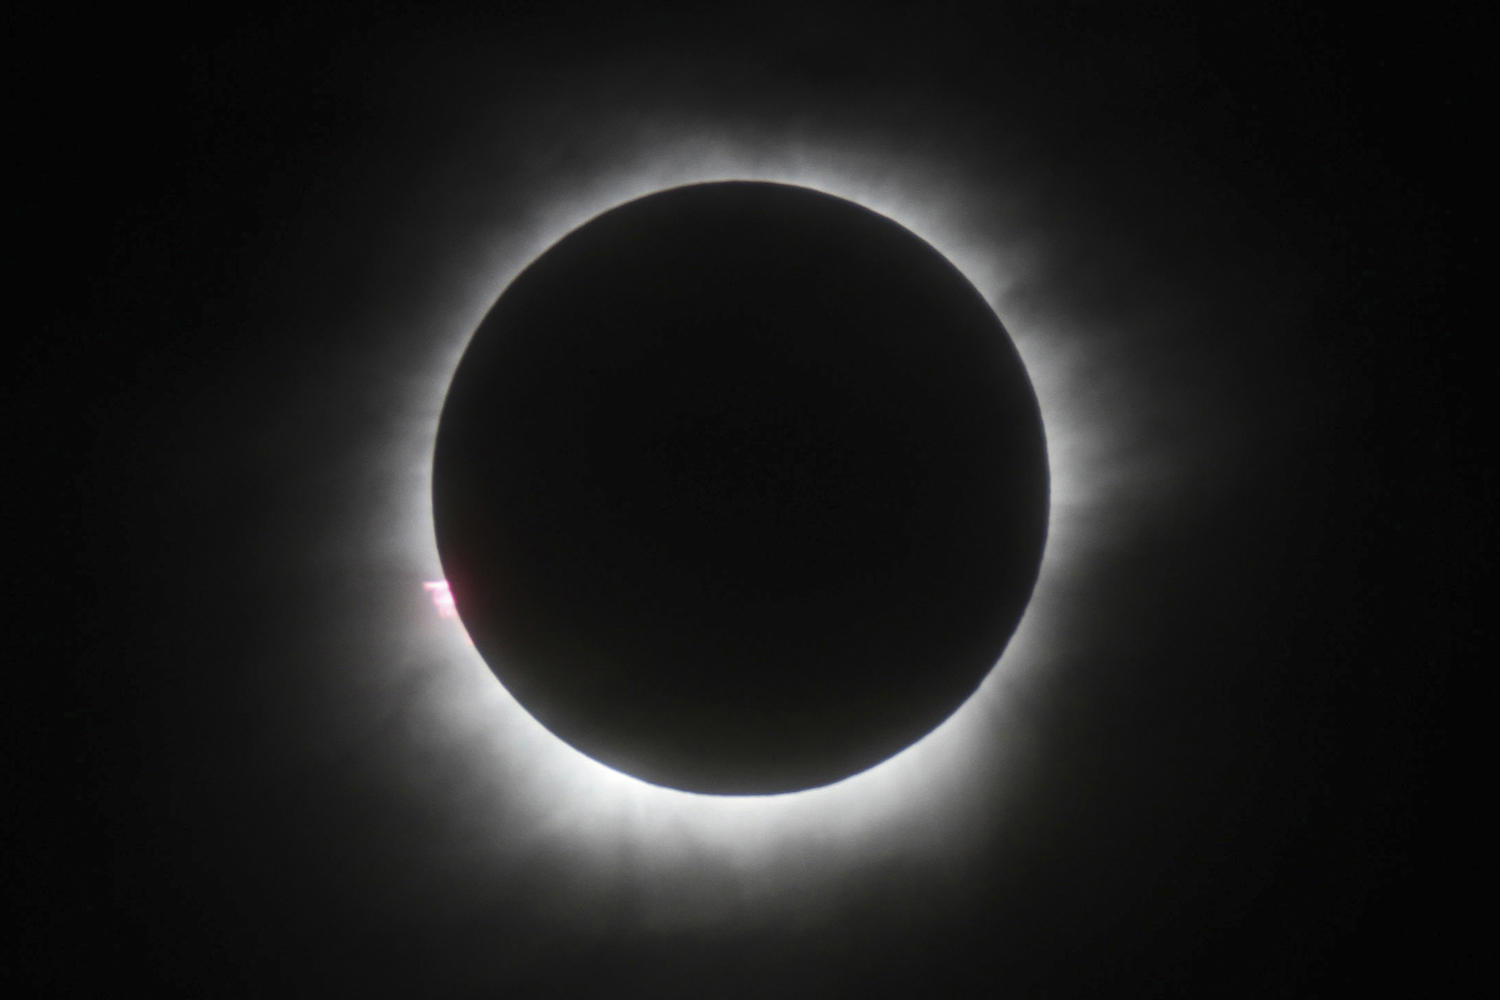 Solar eclipse day weather may include some showers